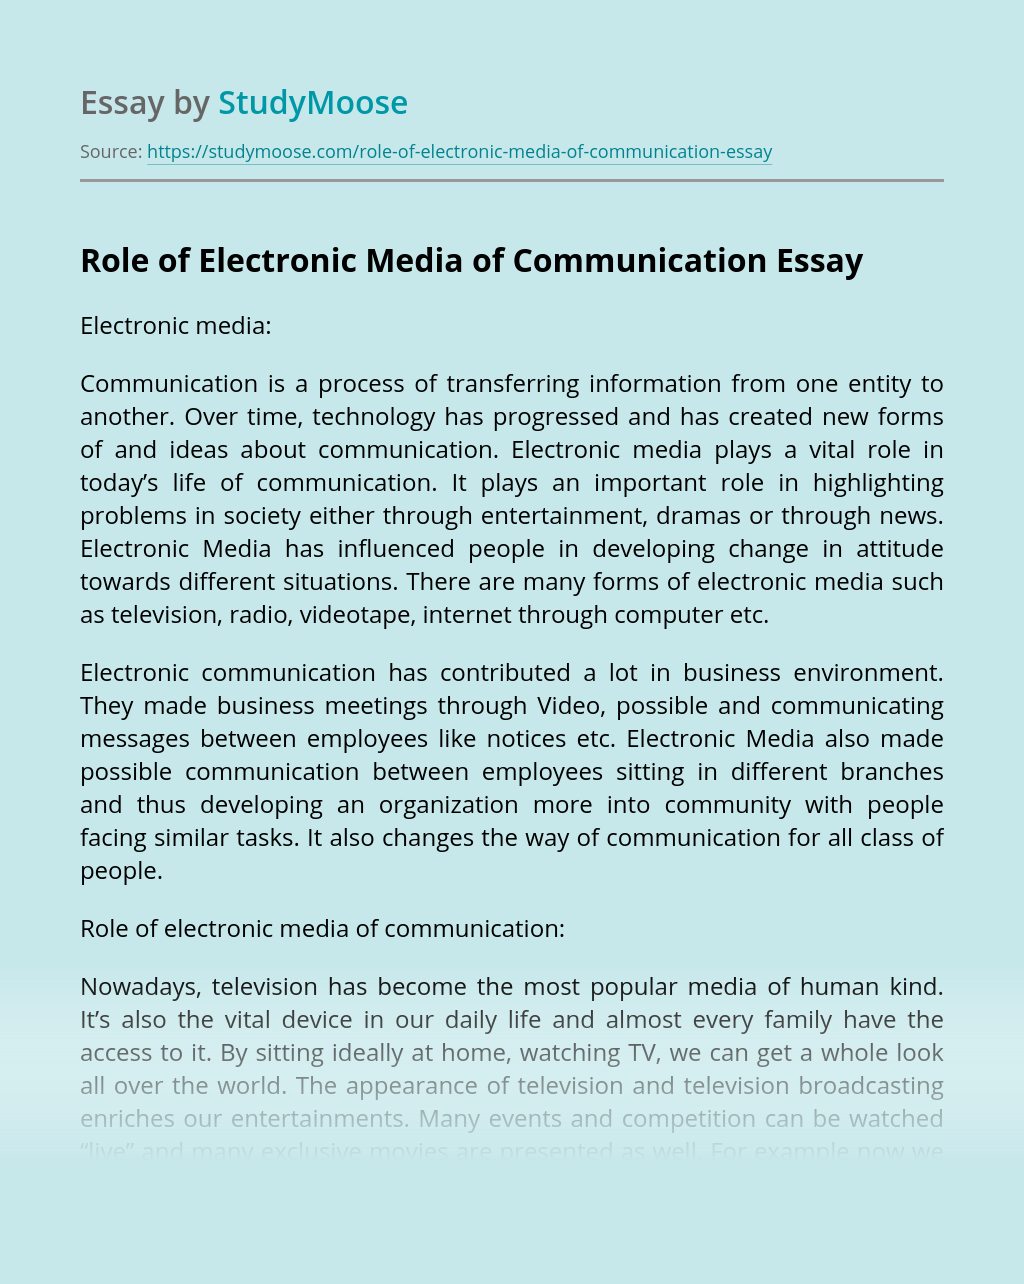 Role of Electronic Media of Communication